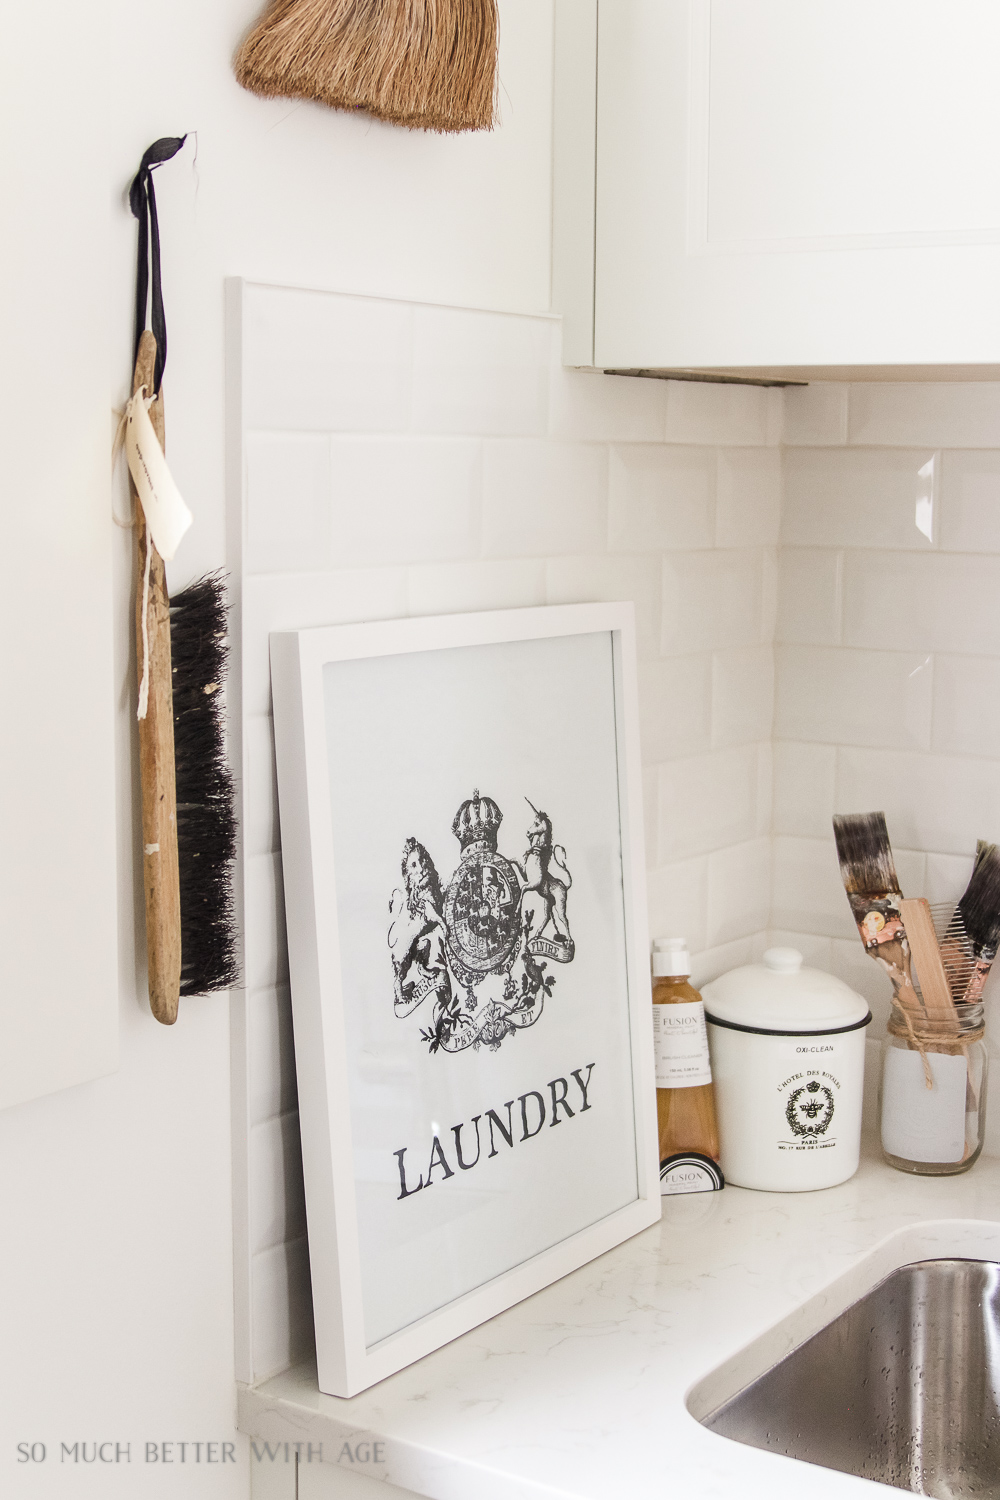 Tiny Vintage Mudroom Makeover / French laundry sign artwork - So Much Better With Age